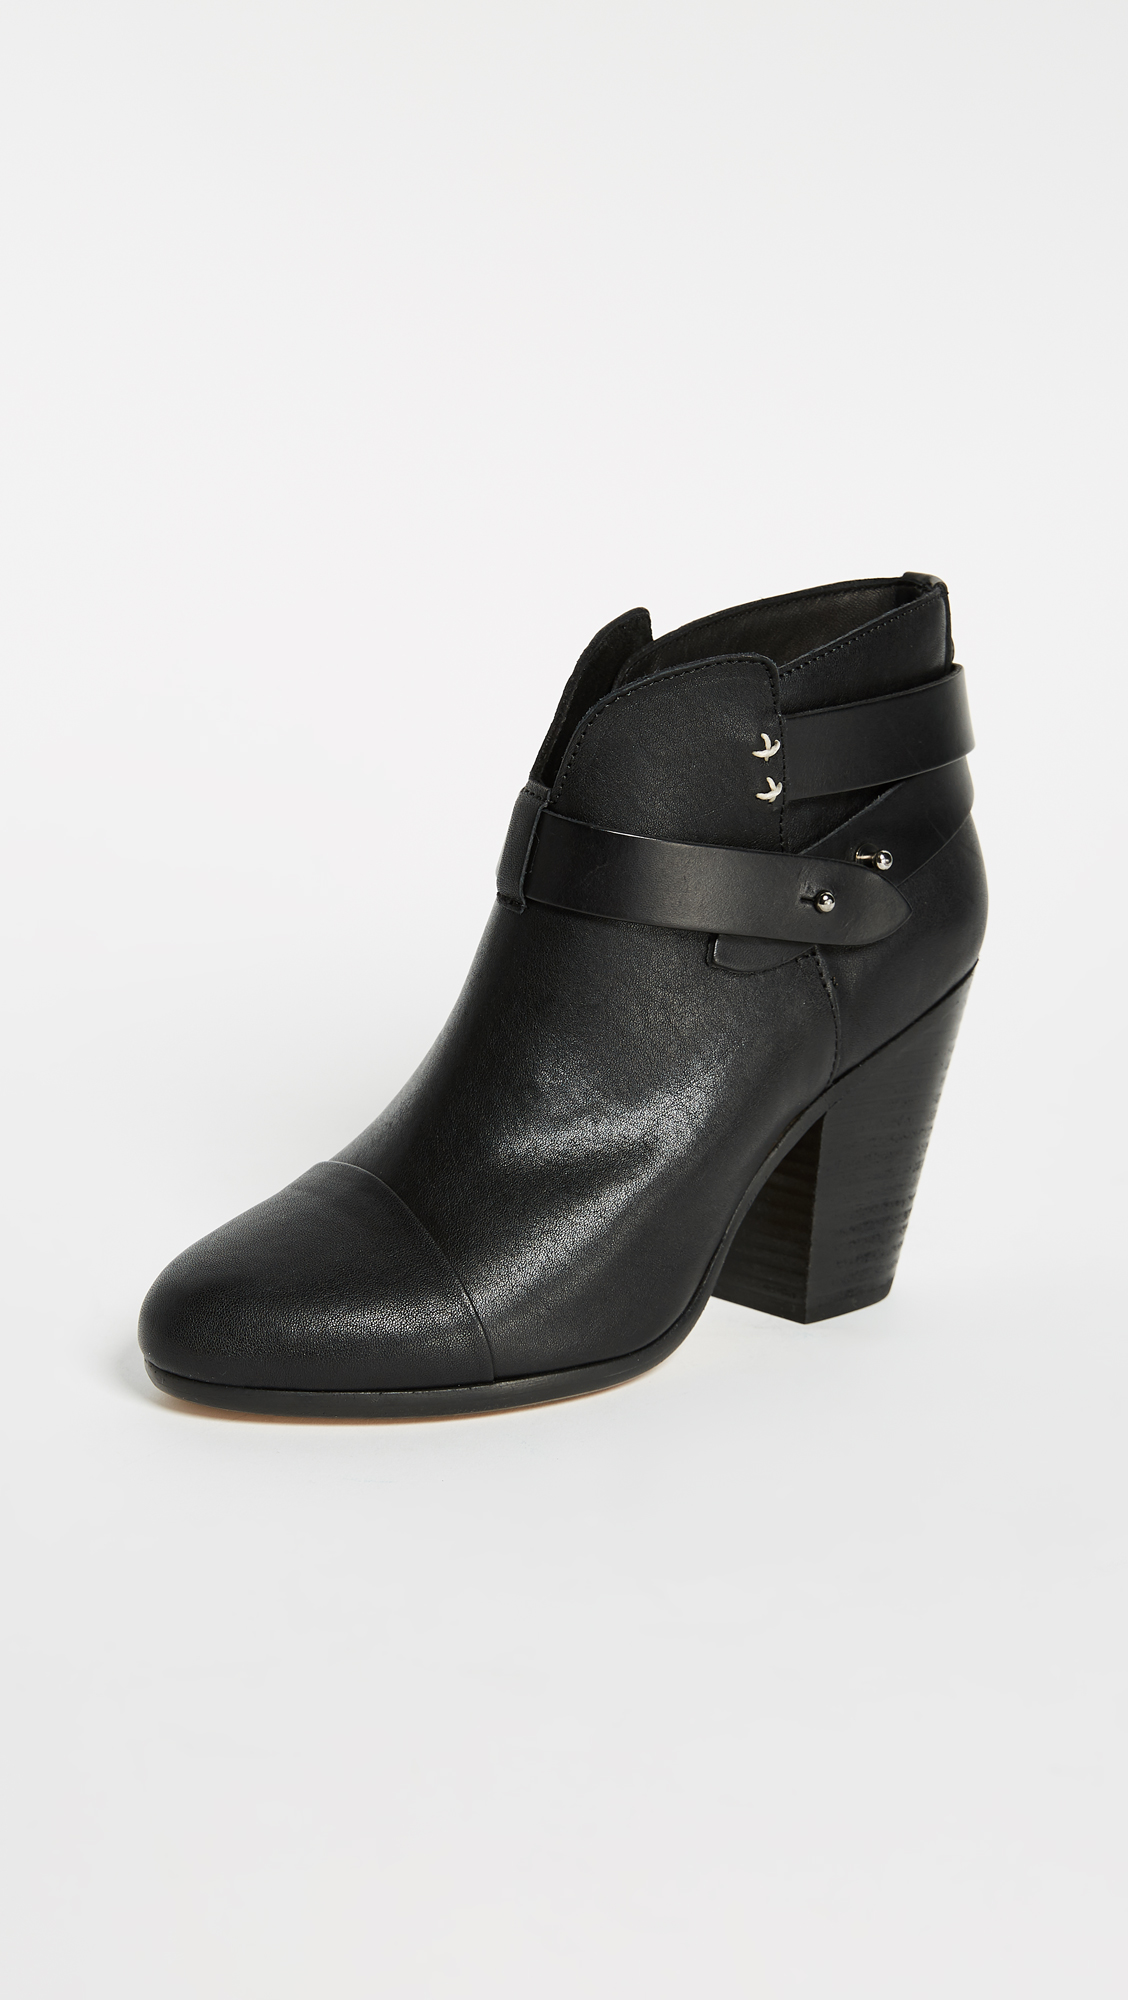 a6f8b1bc7b8 Rag   Bone Harrow Booties